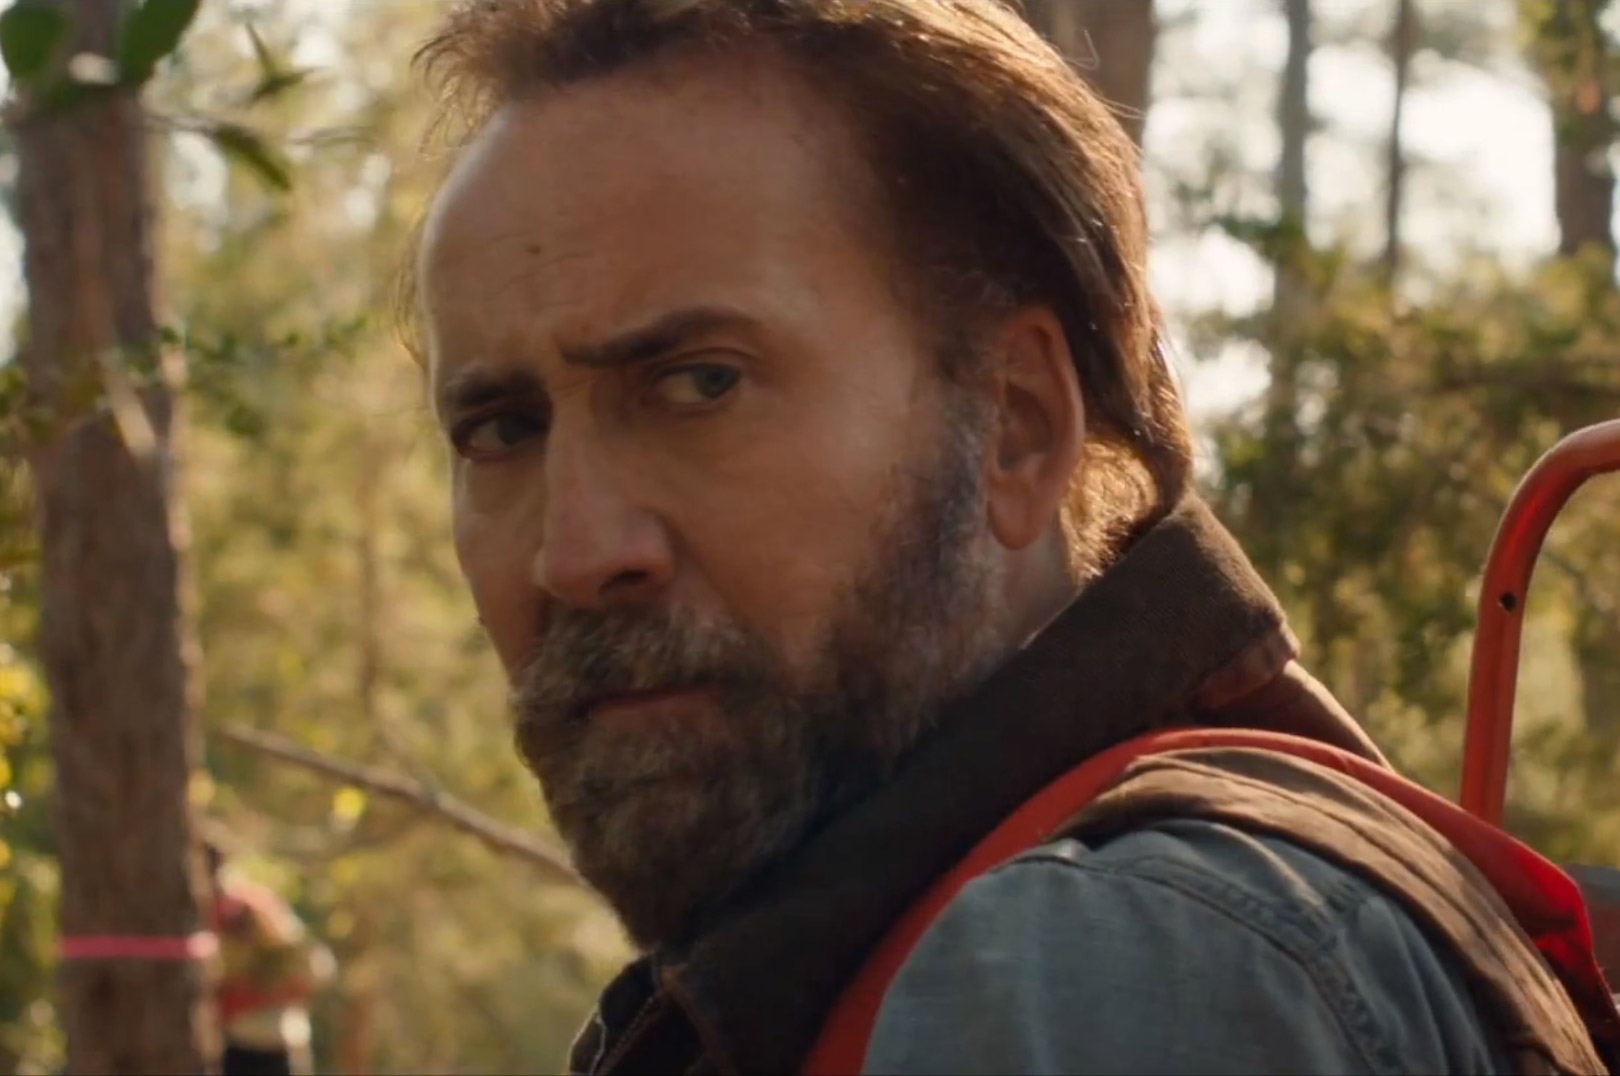 Nic Cage will Star in a Movie Based on a H P  Lovecraft